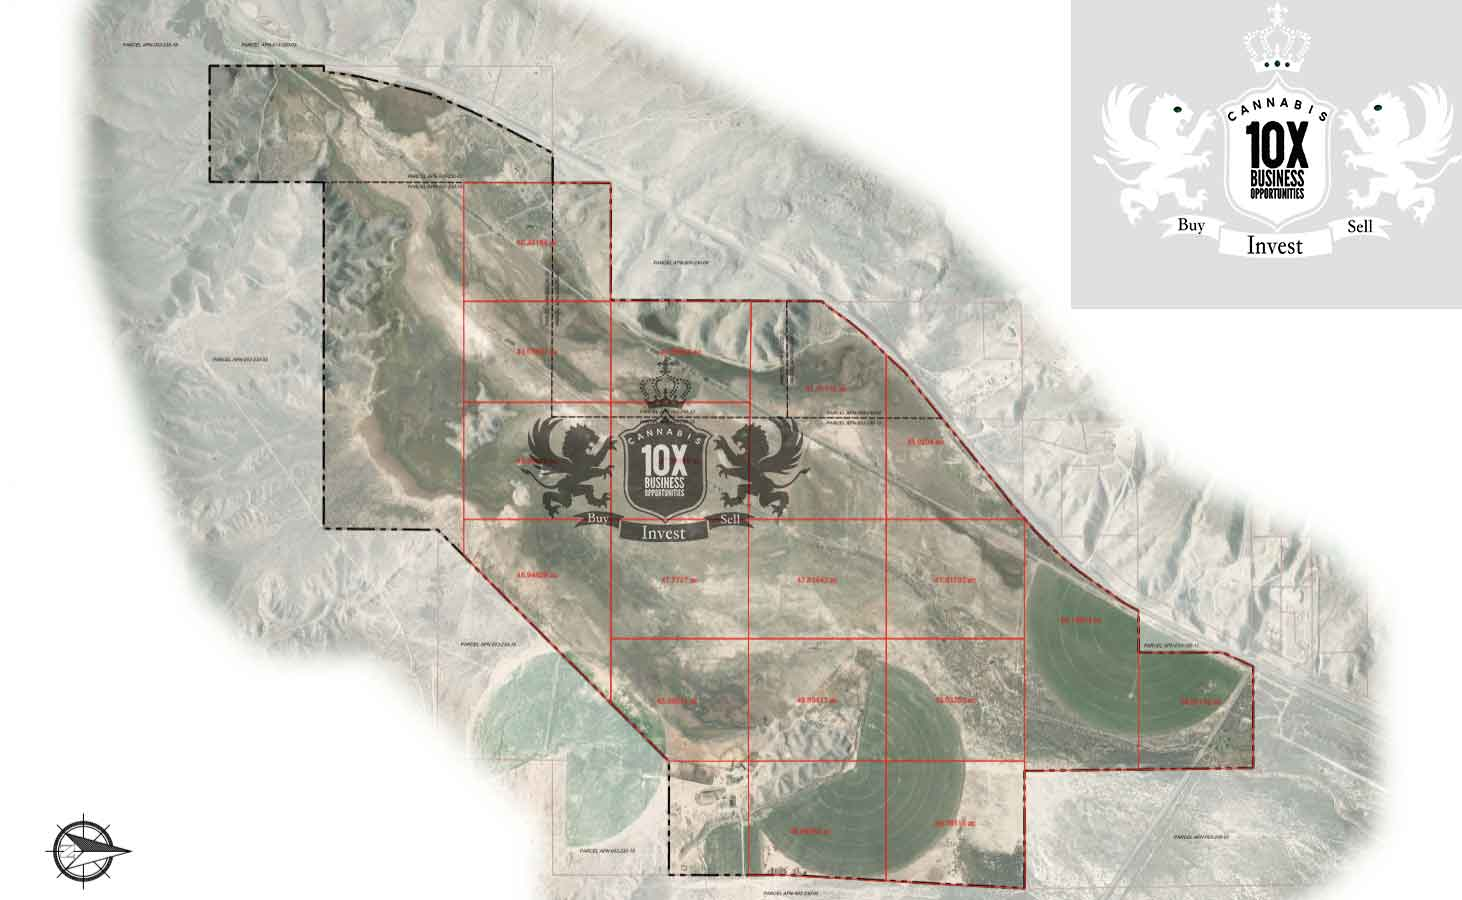 Nevada Cultivation License For Sale Site Plan 1